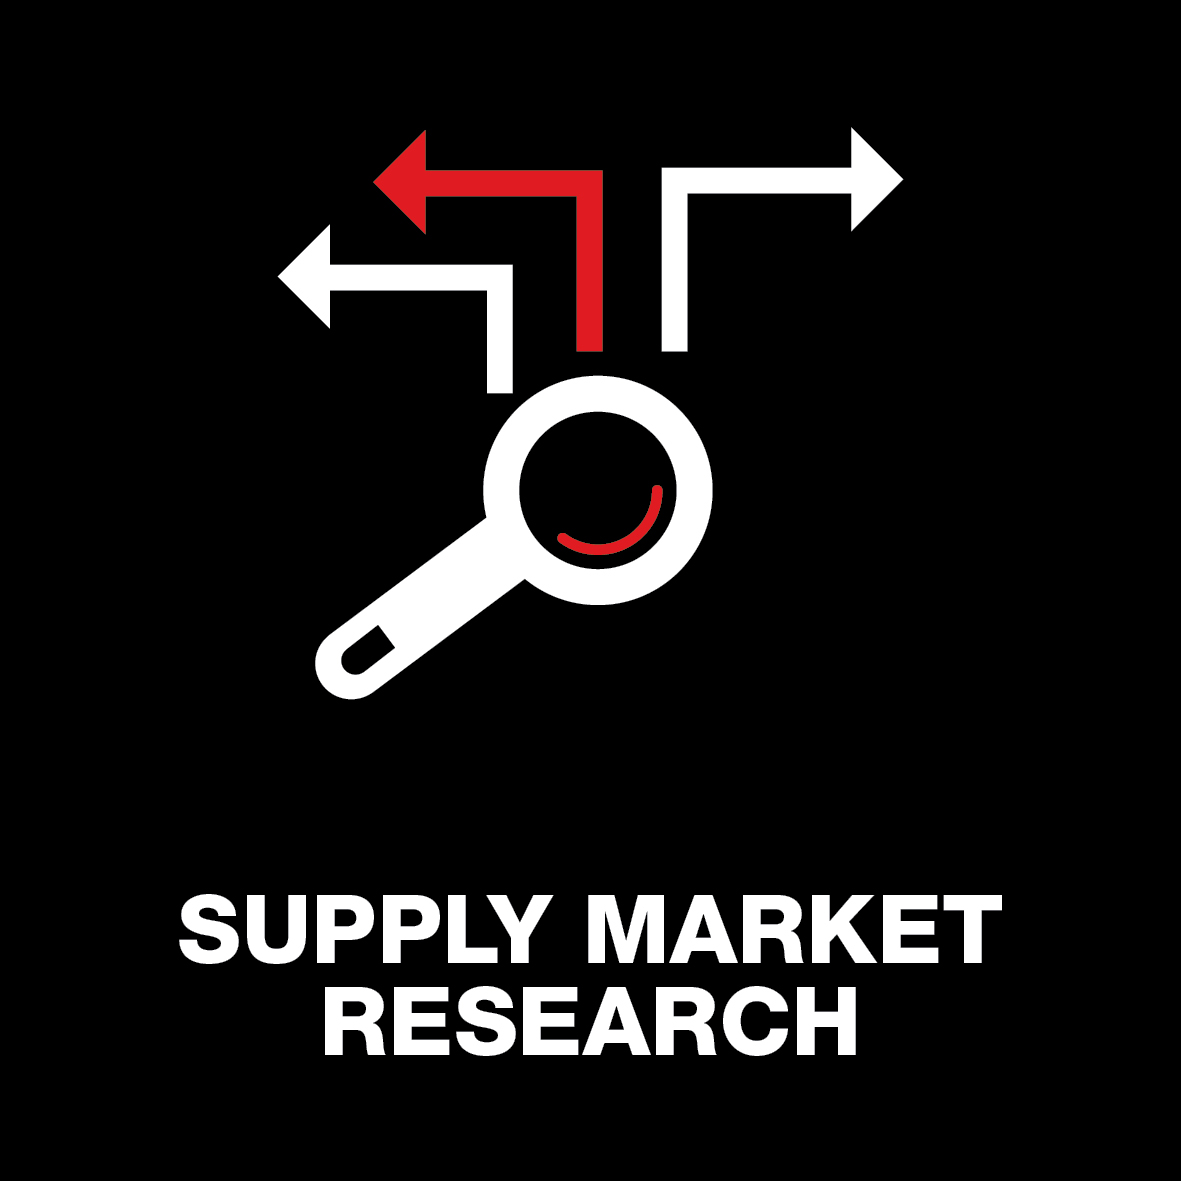 Supply Market Research